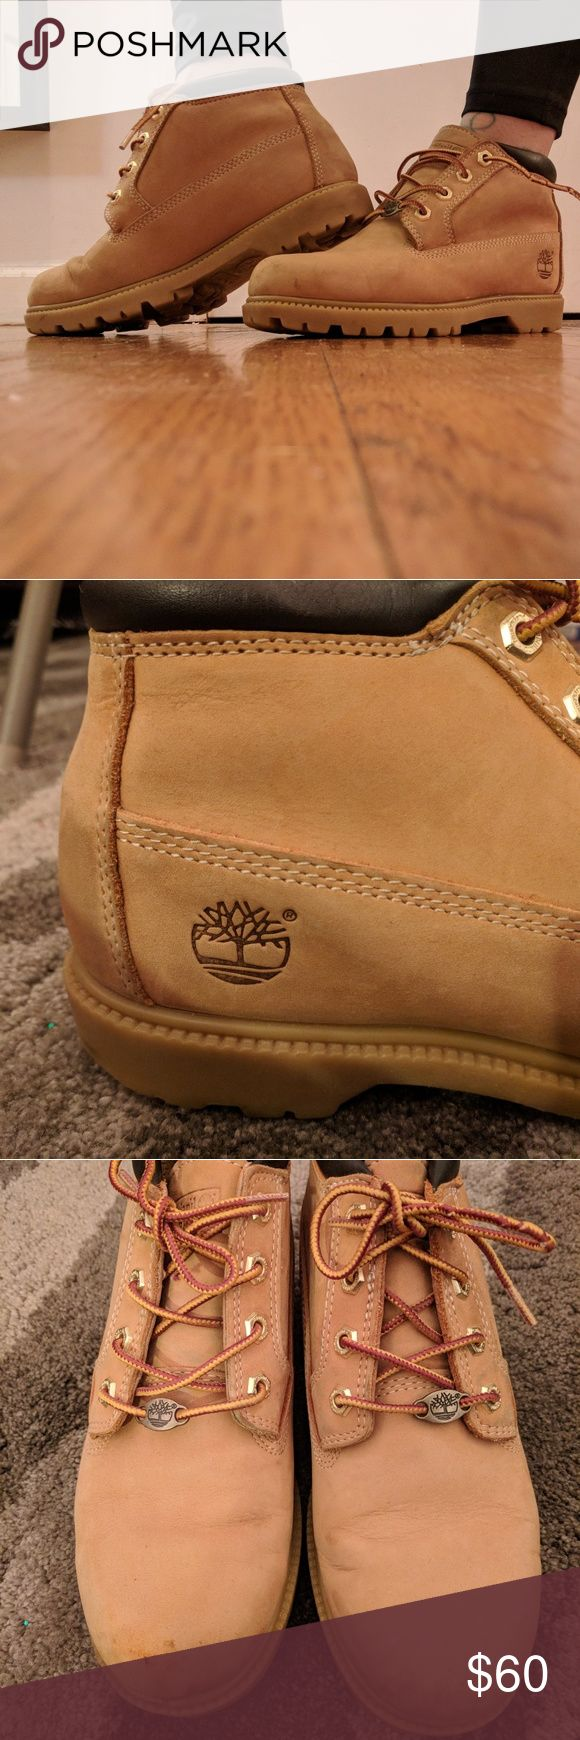 "Timberland ""Nellie"" boots Classic, wheat colored, Timberland booties.  -size: 7.5M -Waterproof -Leather upper -Ankle booties  -Good condition, small scuffs on toe (pictured) Timberland Shoes Ankle Boots & Booties"